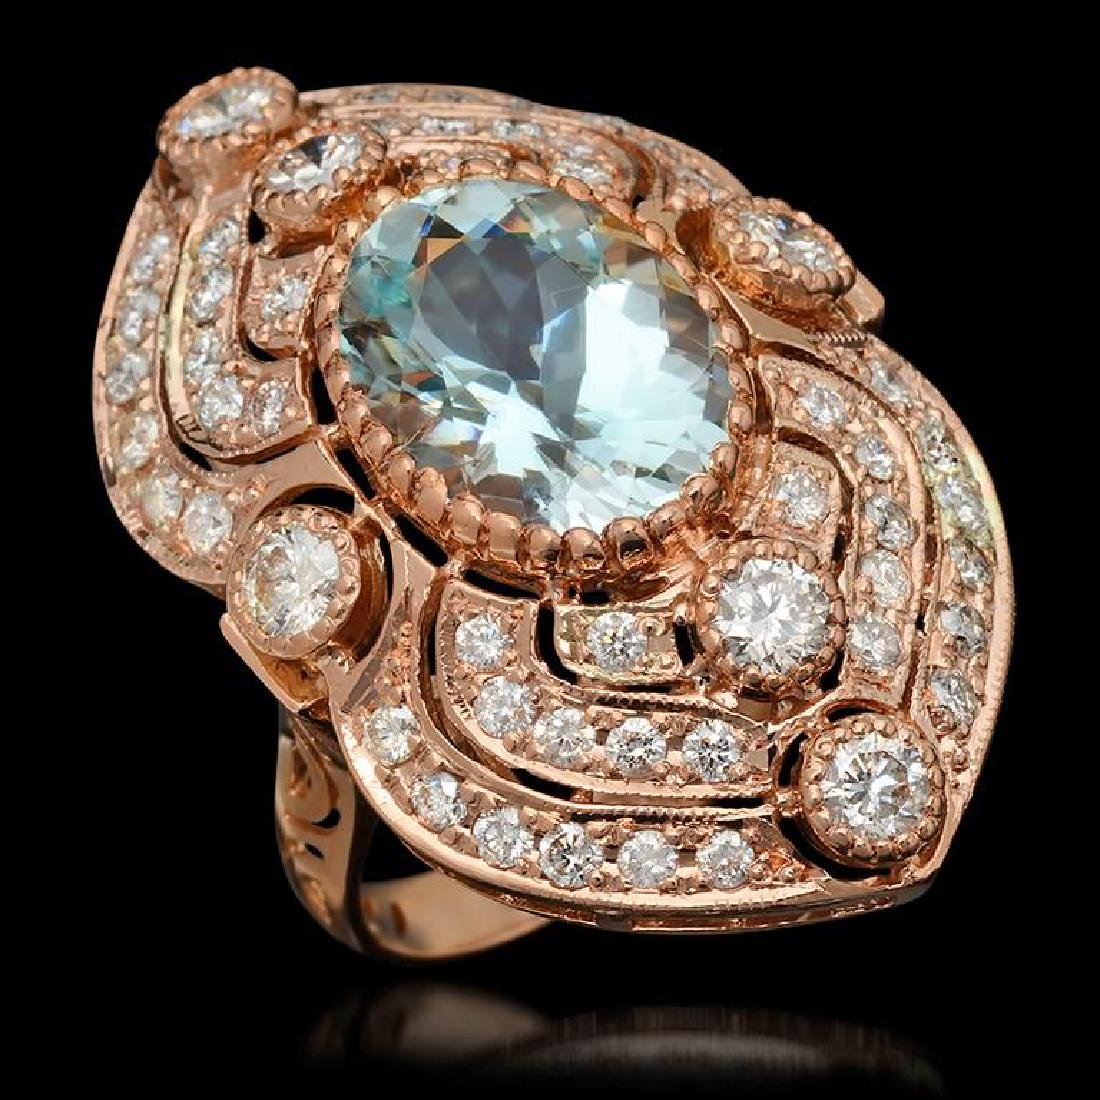 14K Gold 6.27ct Aquamarine & 2.75ct Diamond Ring